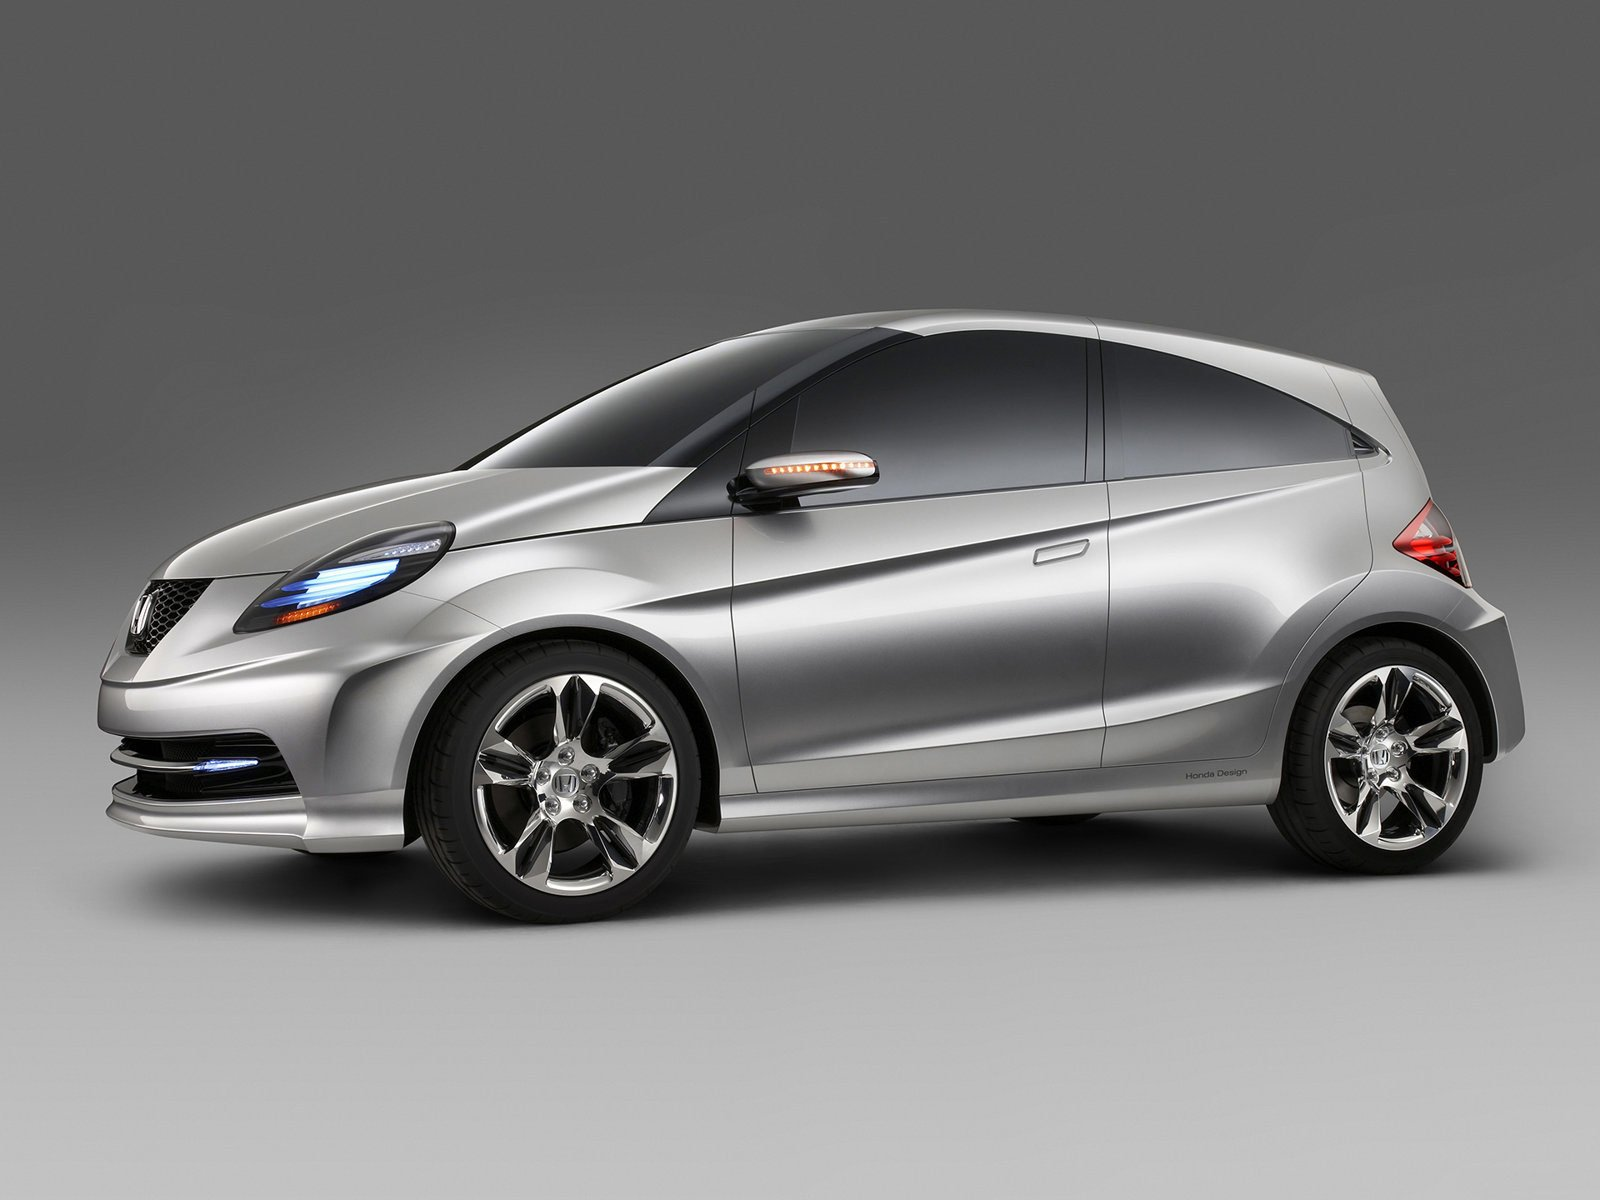 New 2010 Honda New Small Concept Car Photos Accident Lawyers On This Month